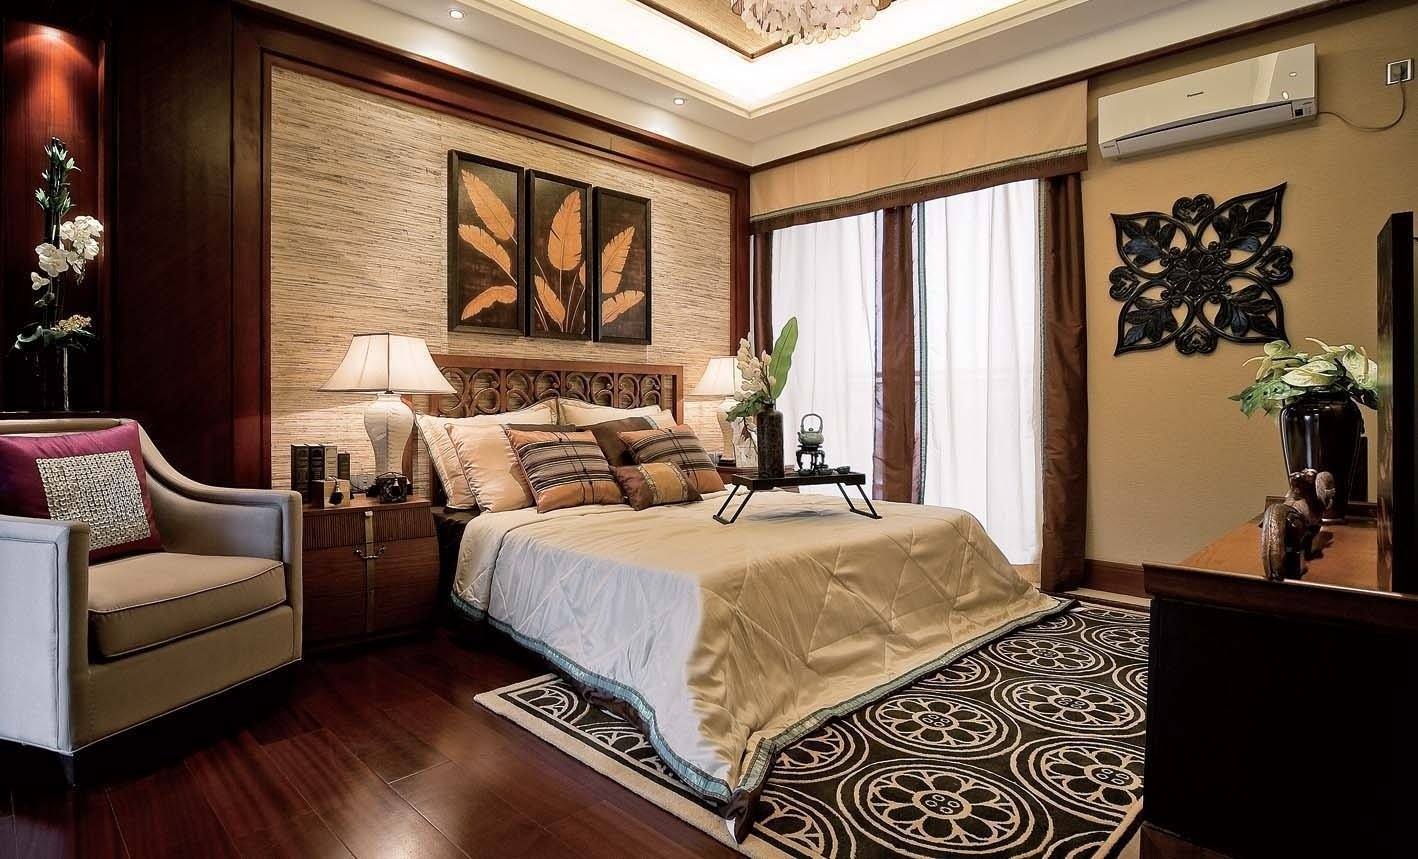 Traditional Bedroom How To Make Your Bedroom Feel More Romantic - Homemajestic